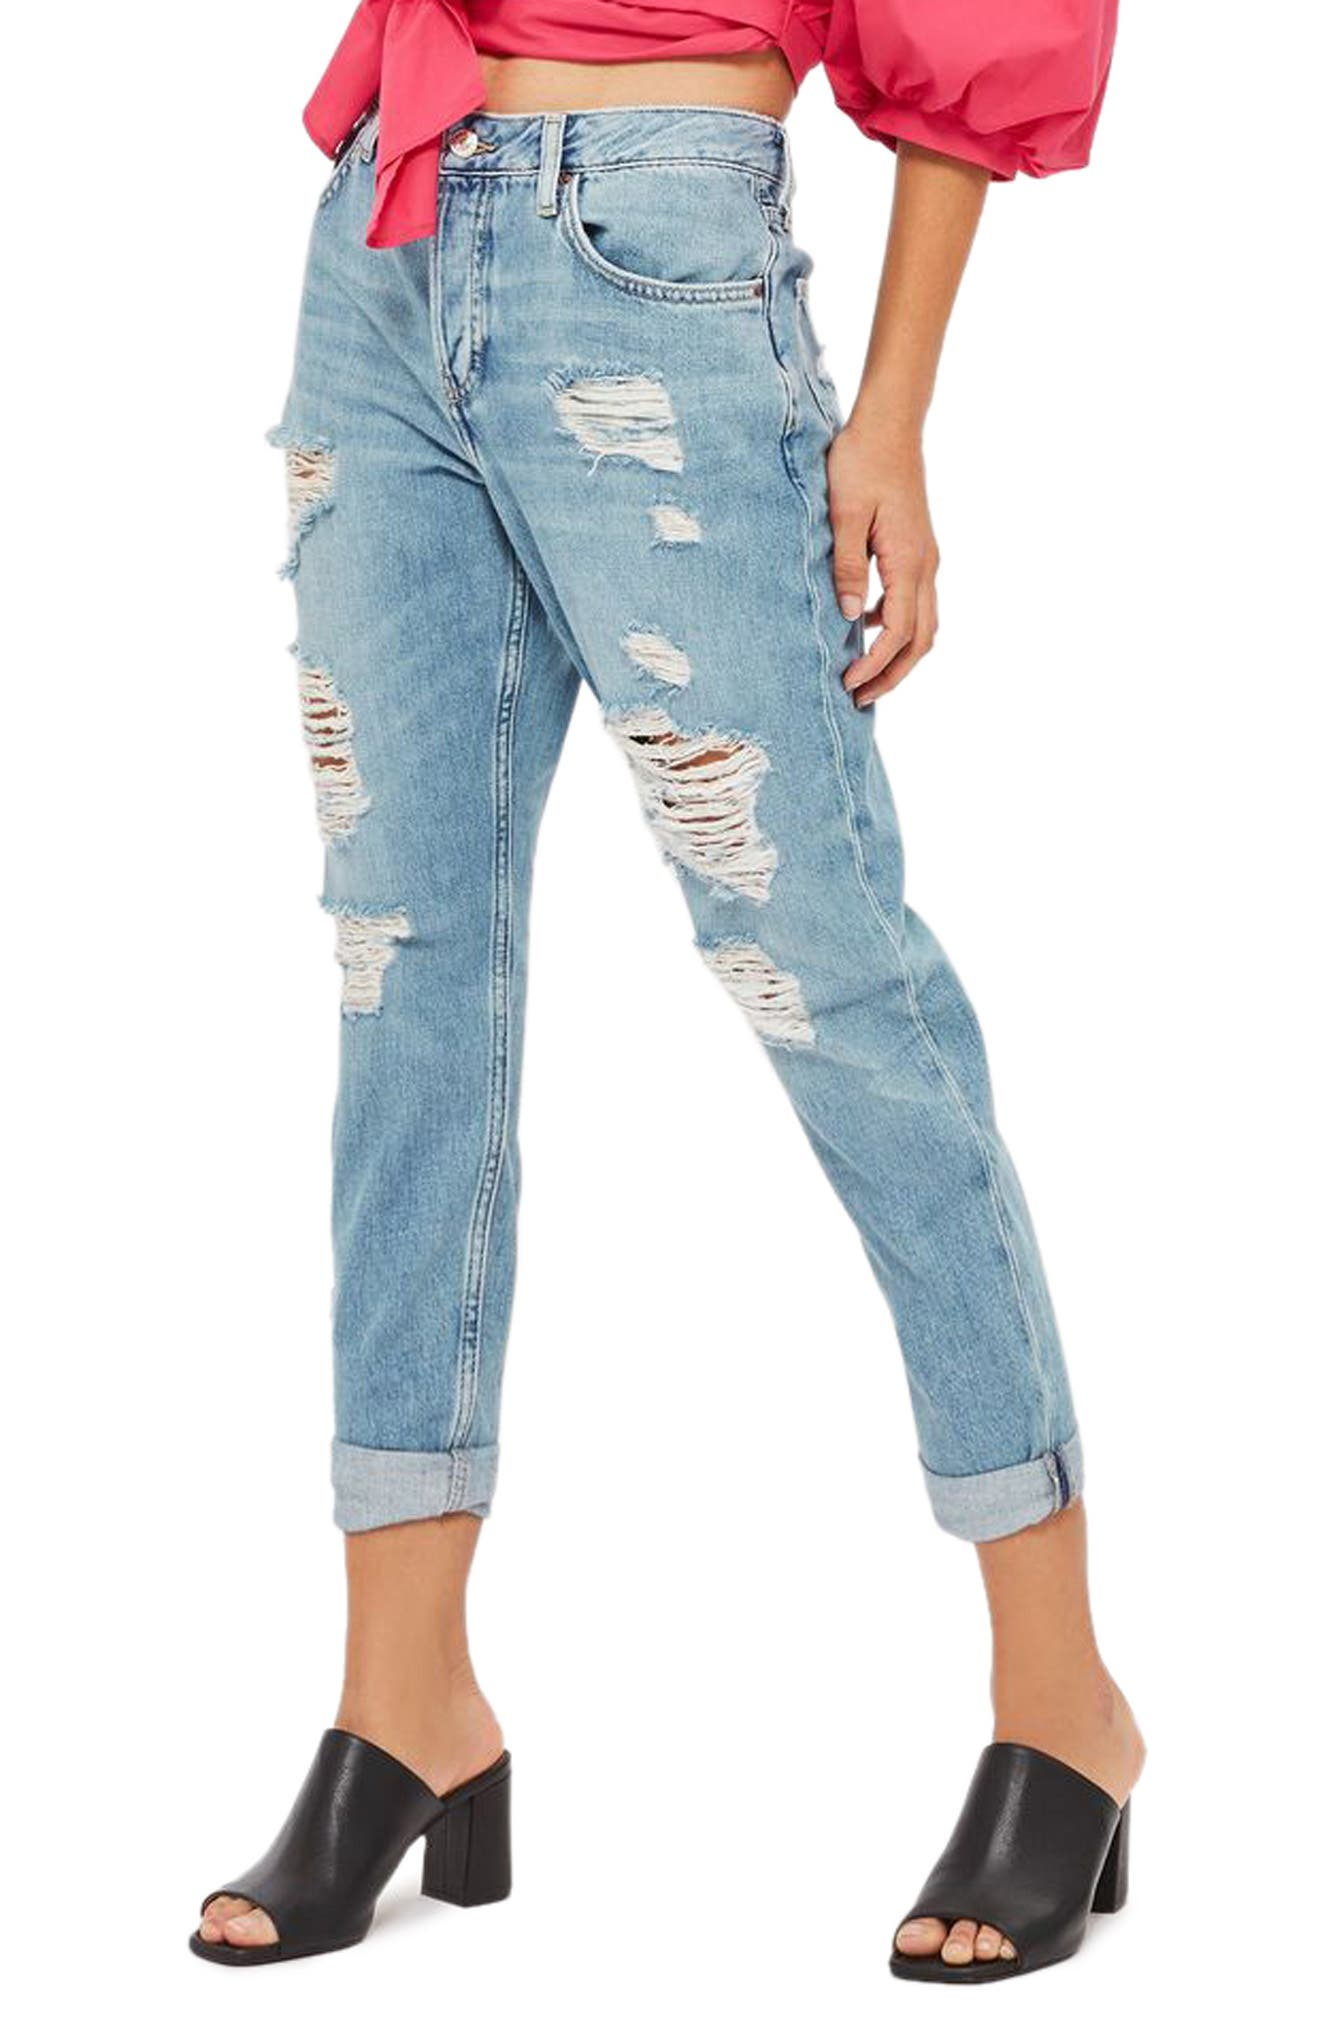 Moto Hayden Super Ripped Boyfriend Jeans,                         Main,                         color, Light Denim